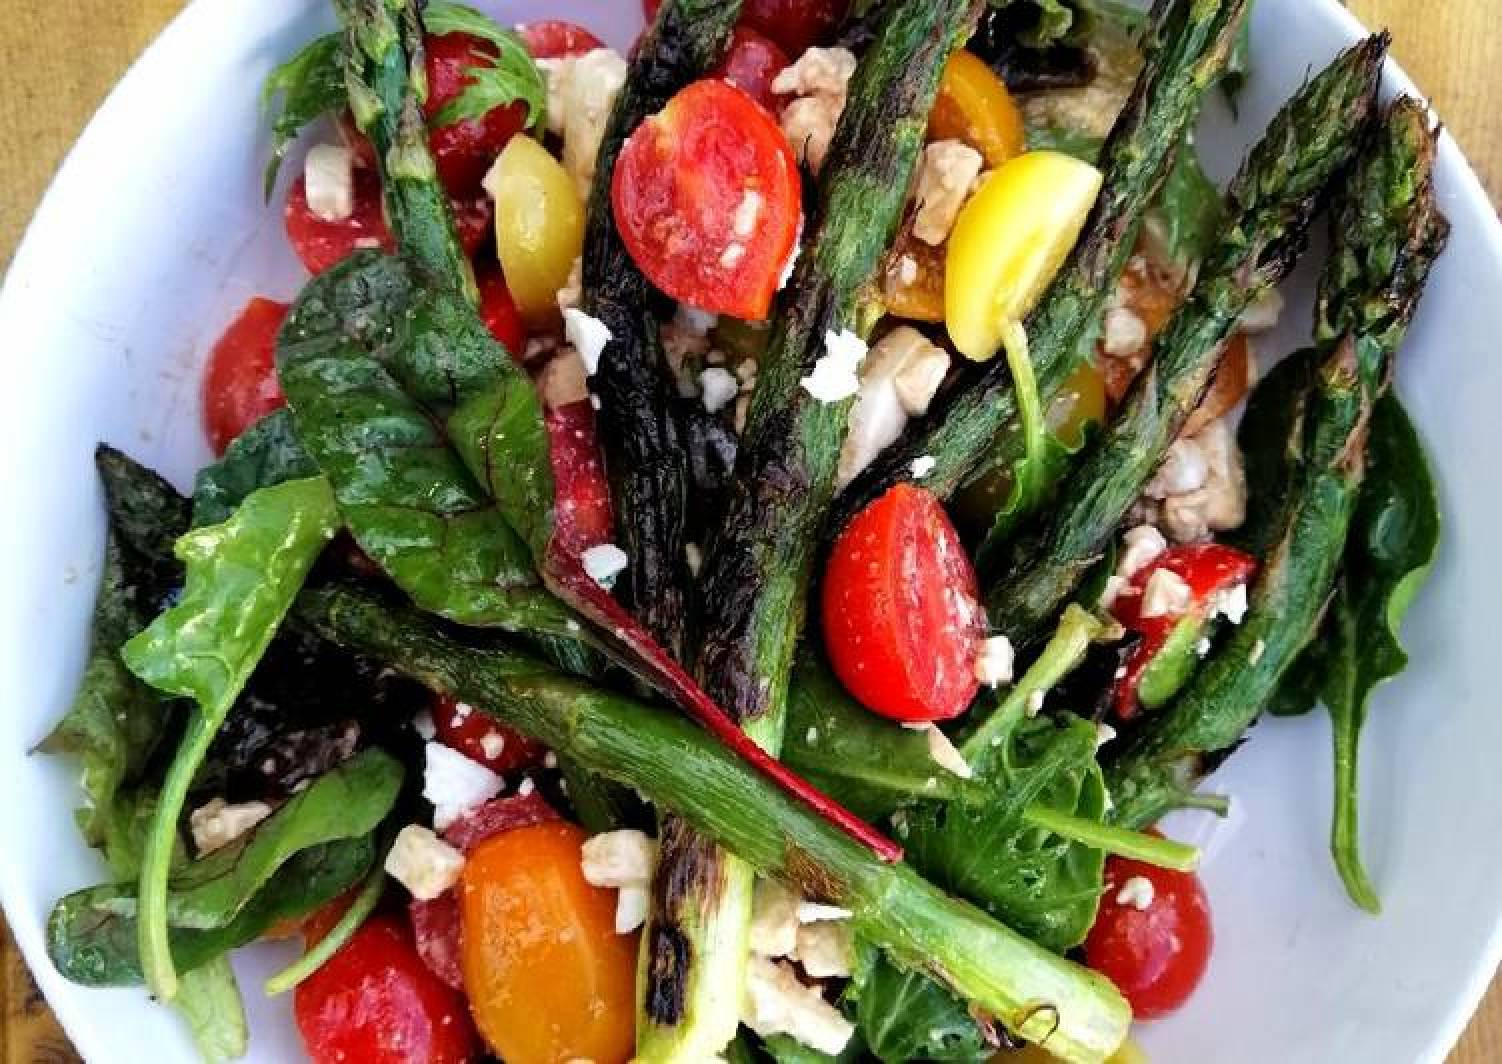 Grilled asparagus, tomato and feta salad